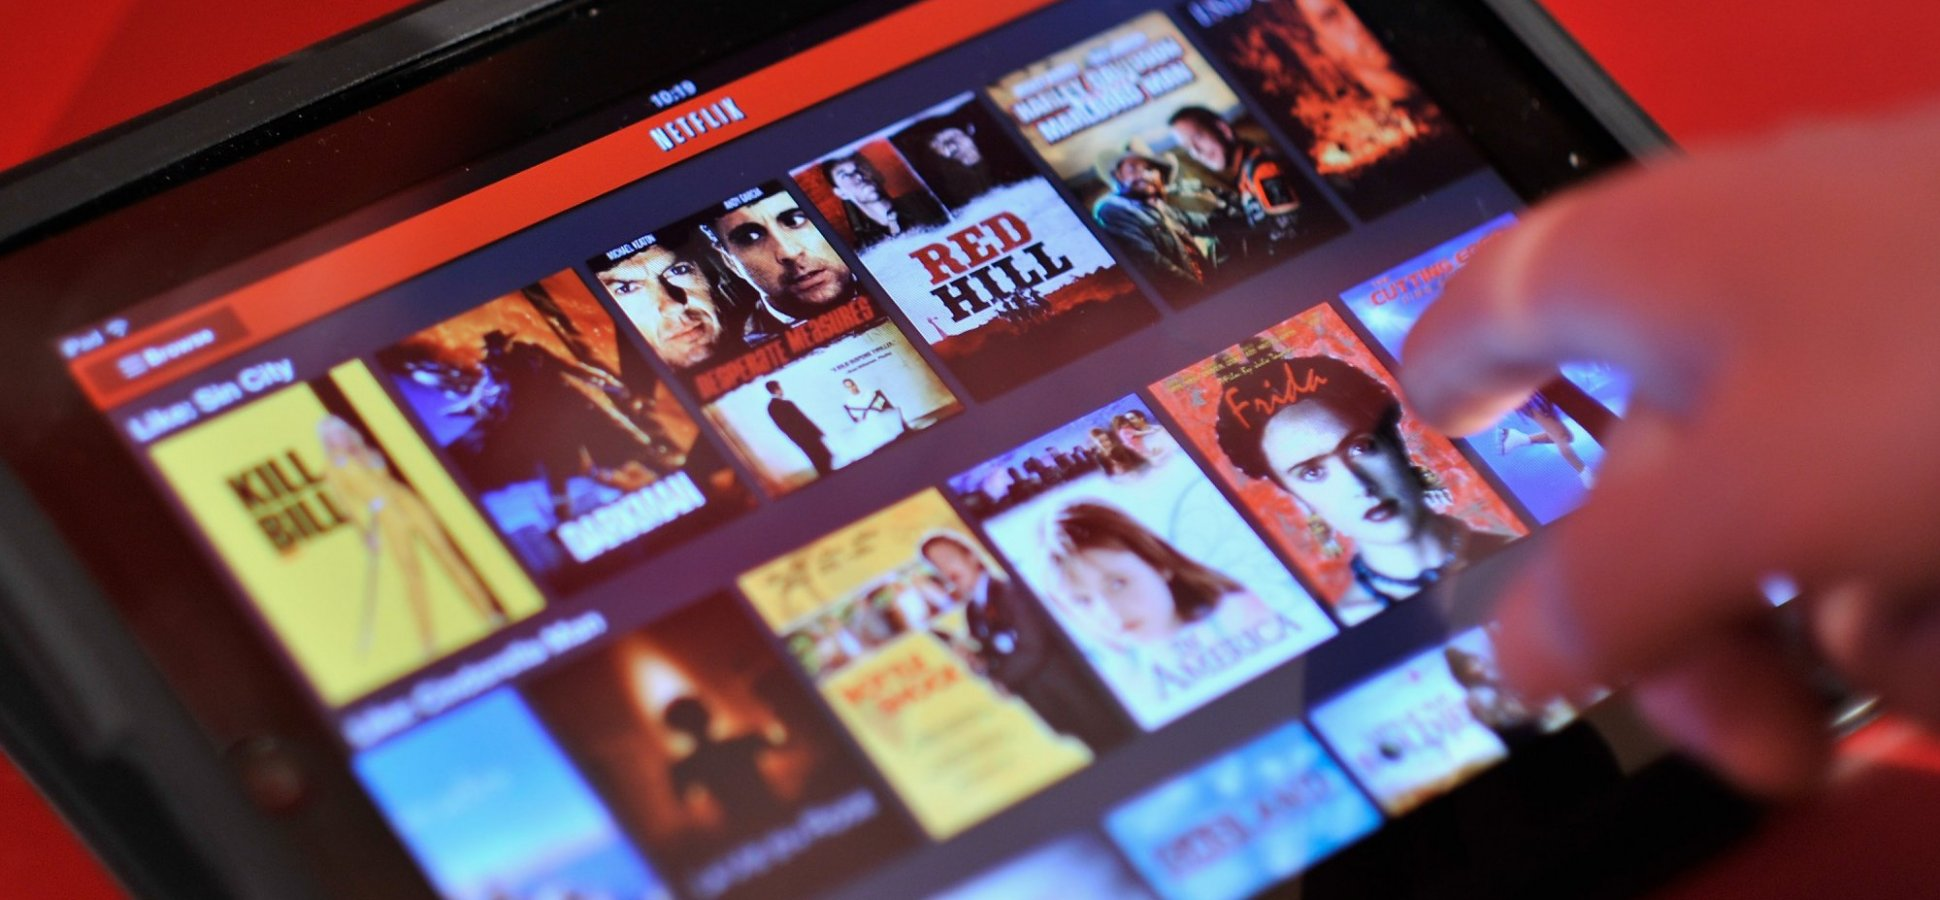 All Things Fair Movie Free Online here are the top 10 streaming servicesprice, usability